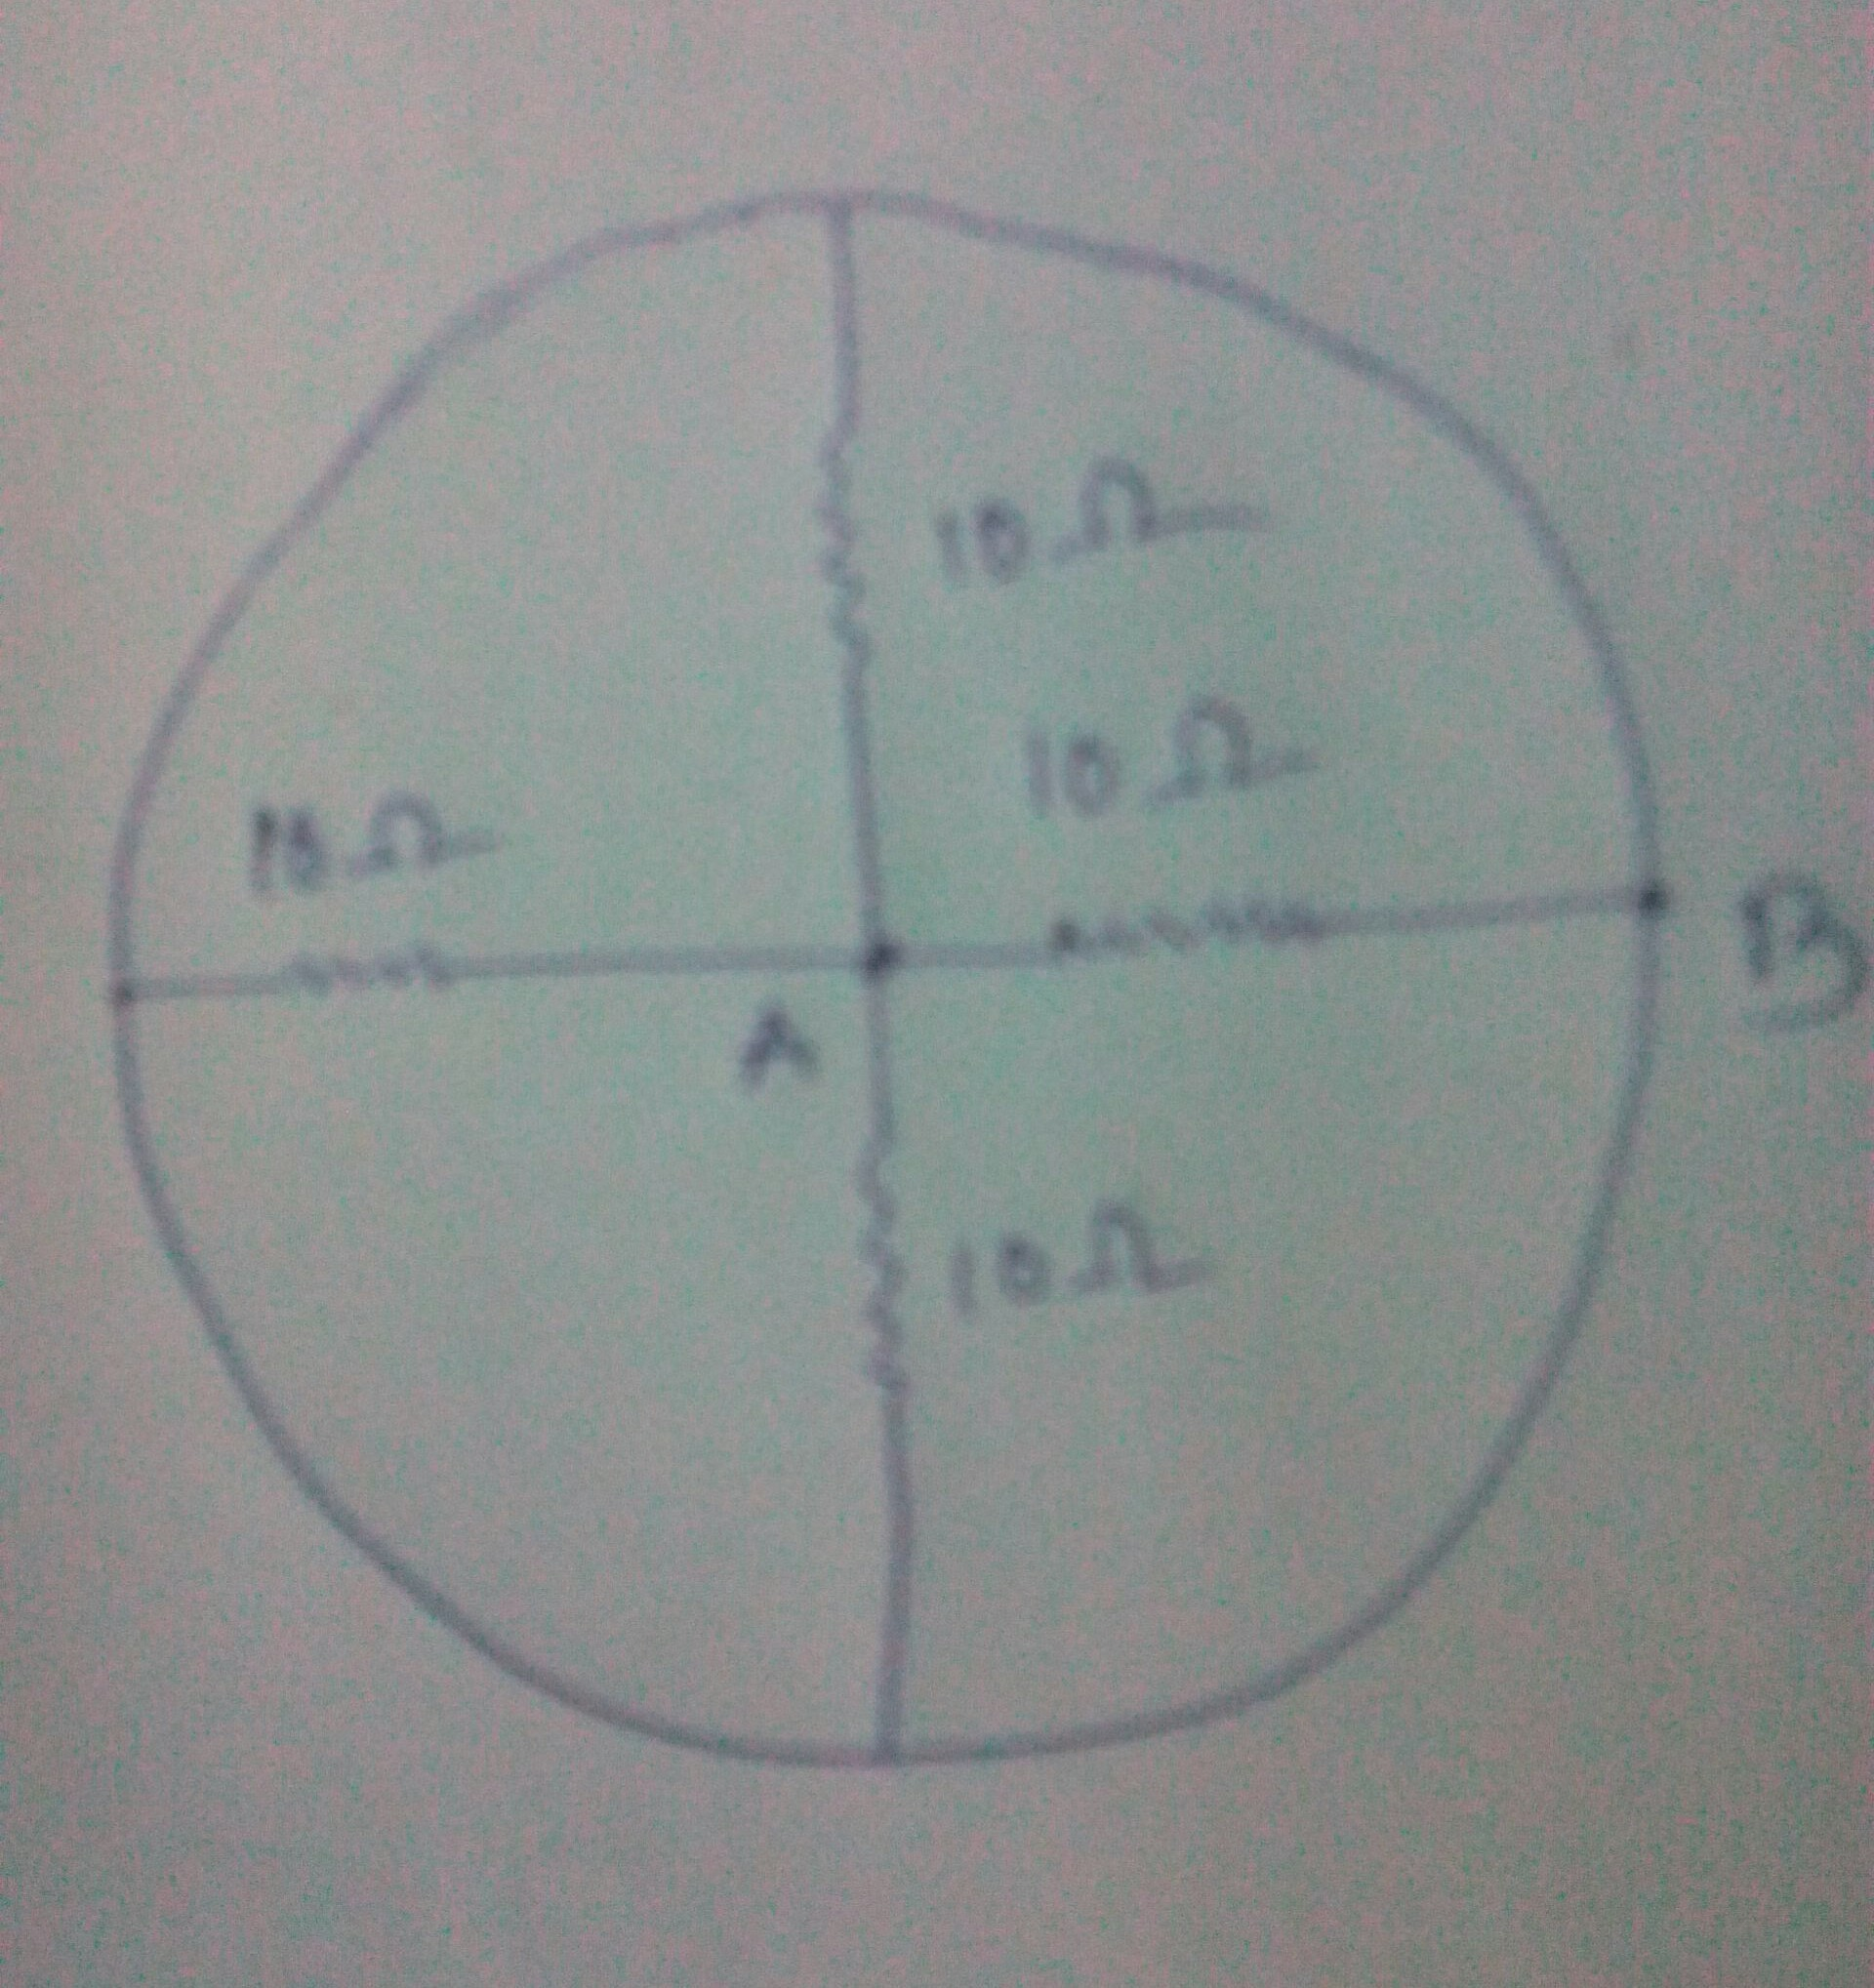 plz help me in this circuit problem. find the resistance between the ...